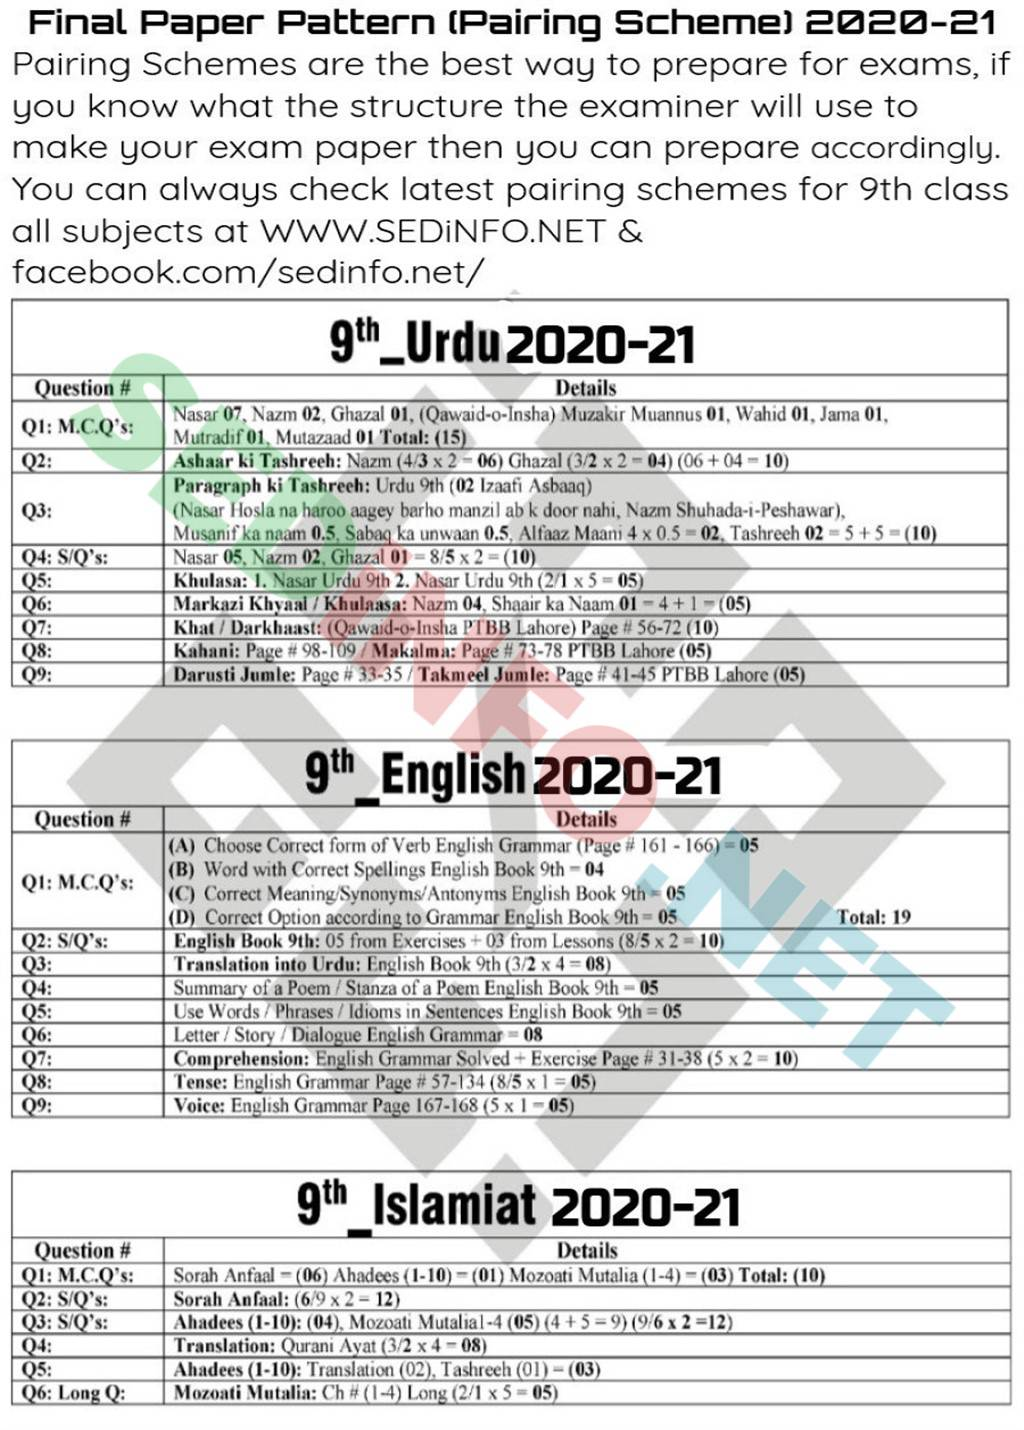 9th-Pairing-Schemes-2020-21-Urdu-English-Islamic-Studies-Page-3